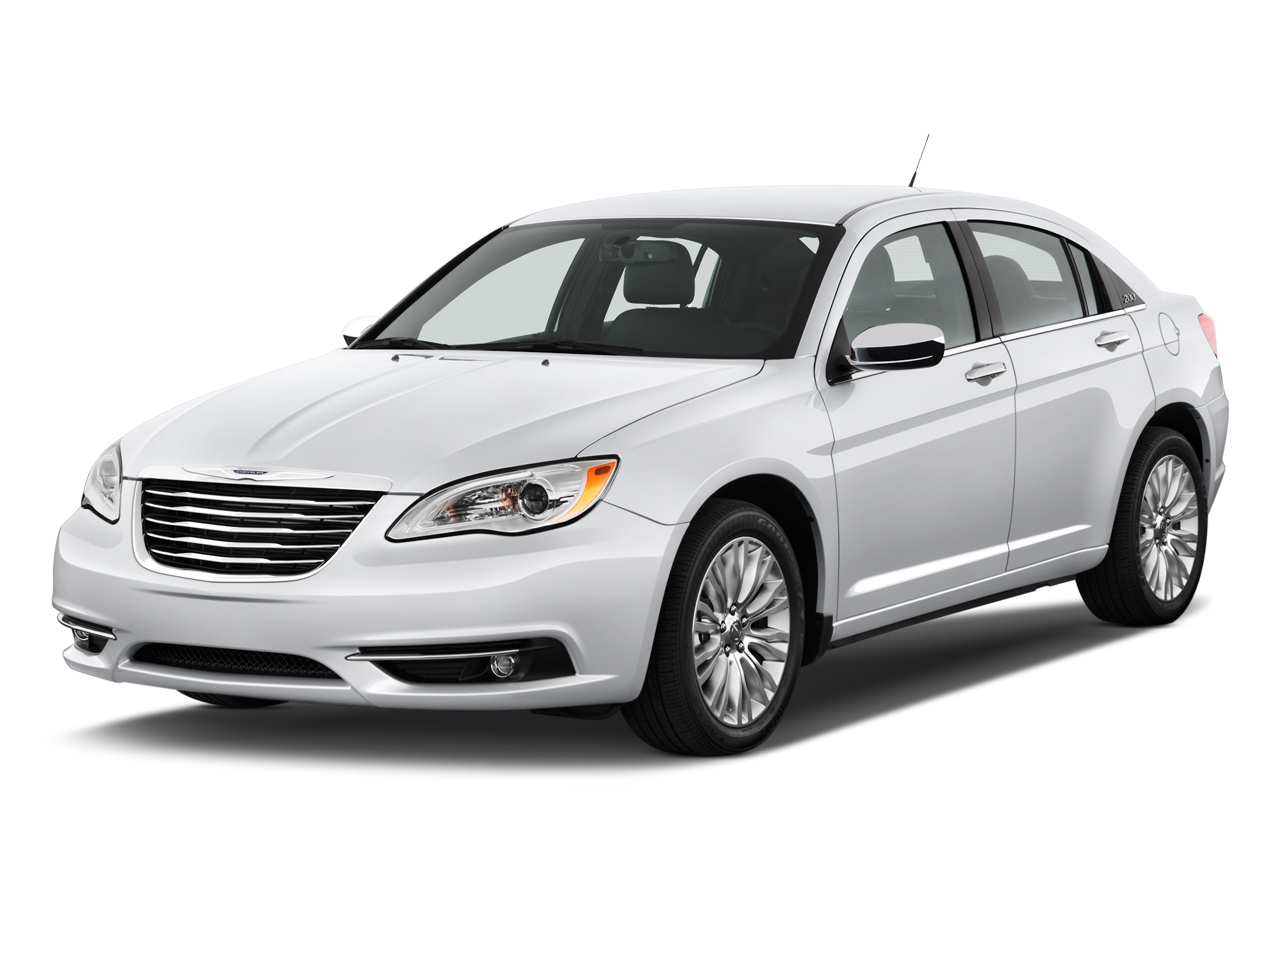 2012 Chrysler 200 Review, Ratings, Specs, Prices, and Photos - The Car Connection